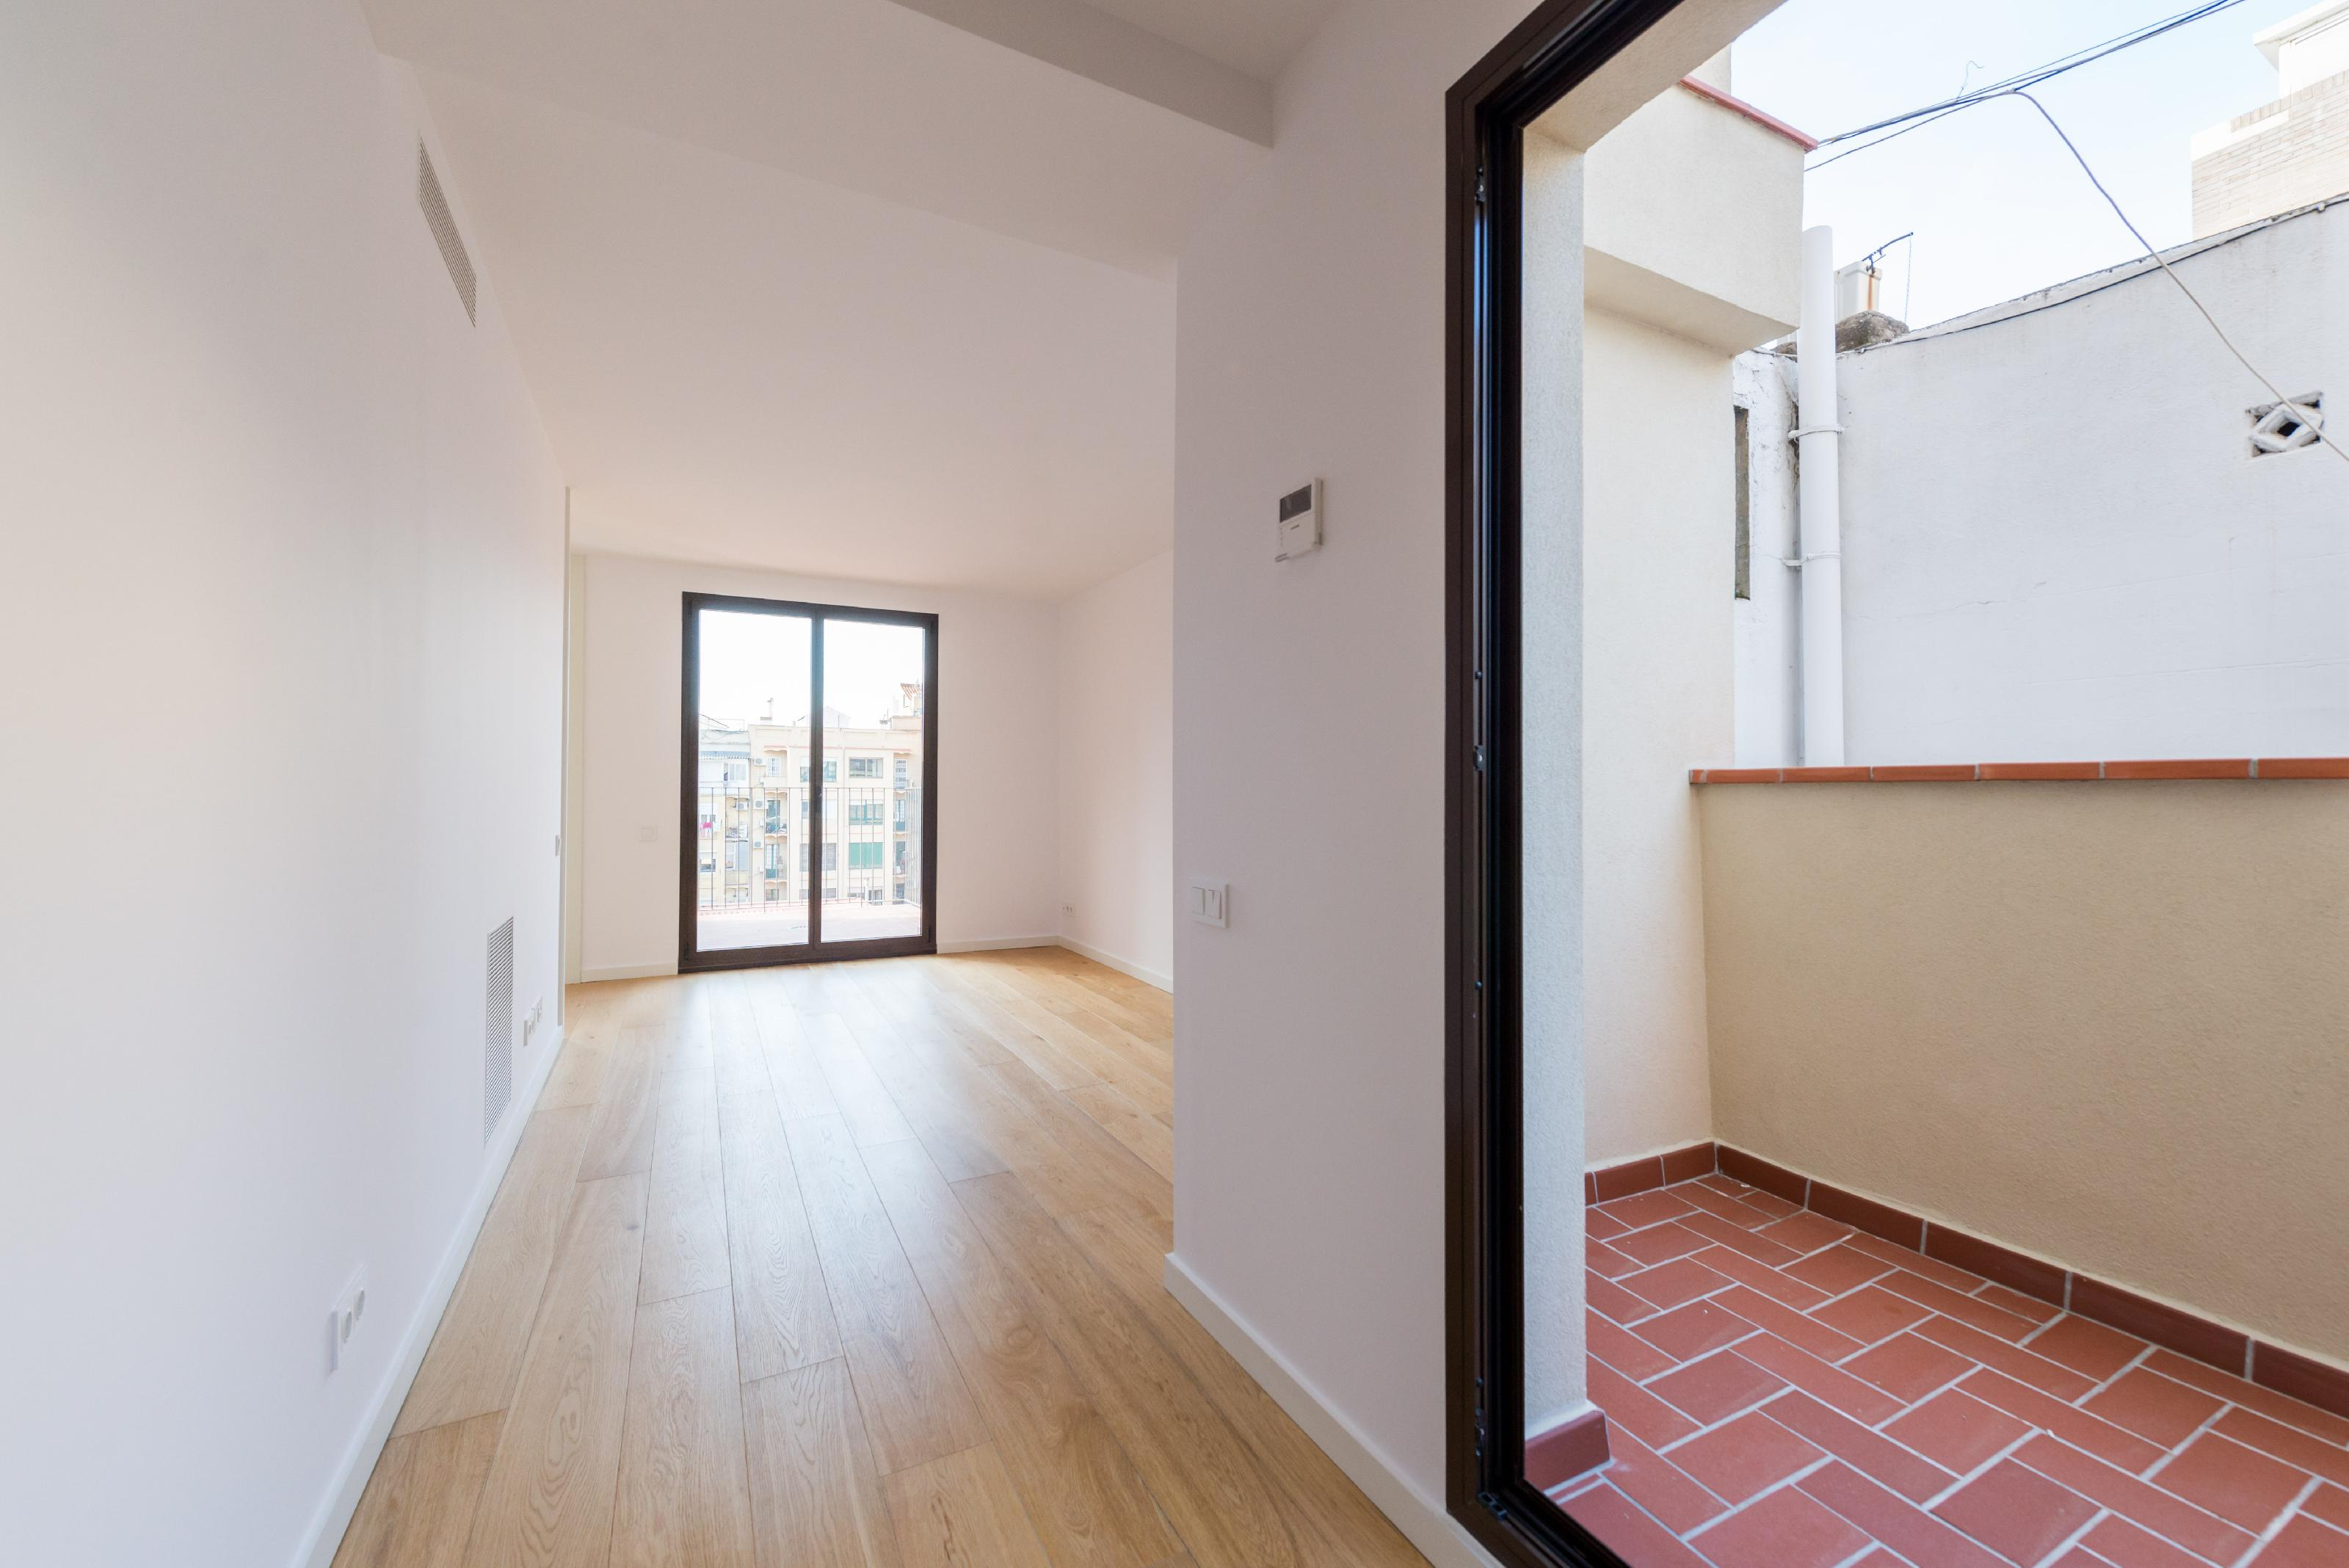 216125 Apartment for sale in Eixample, Old Left Eixample 14